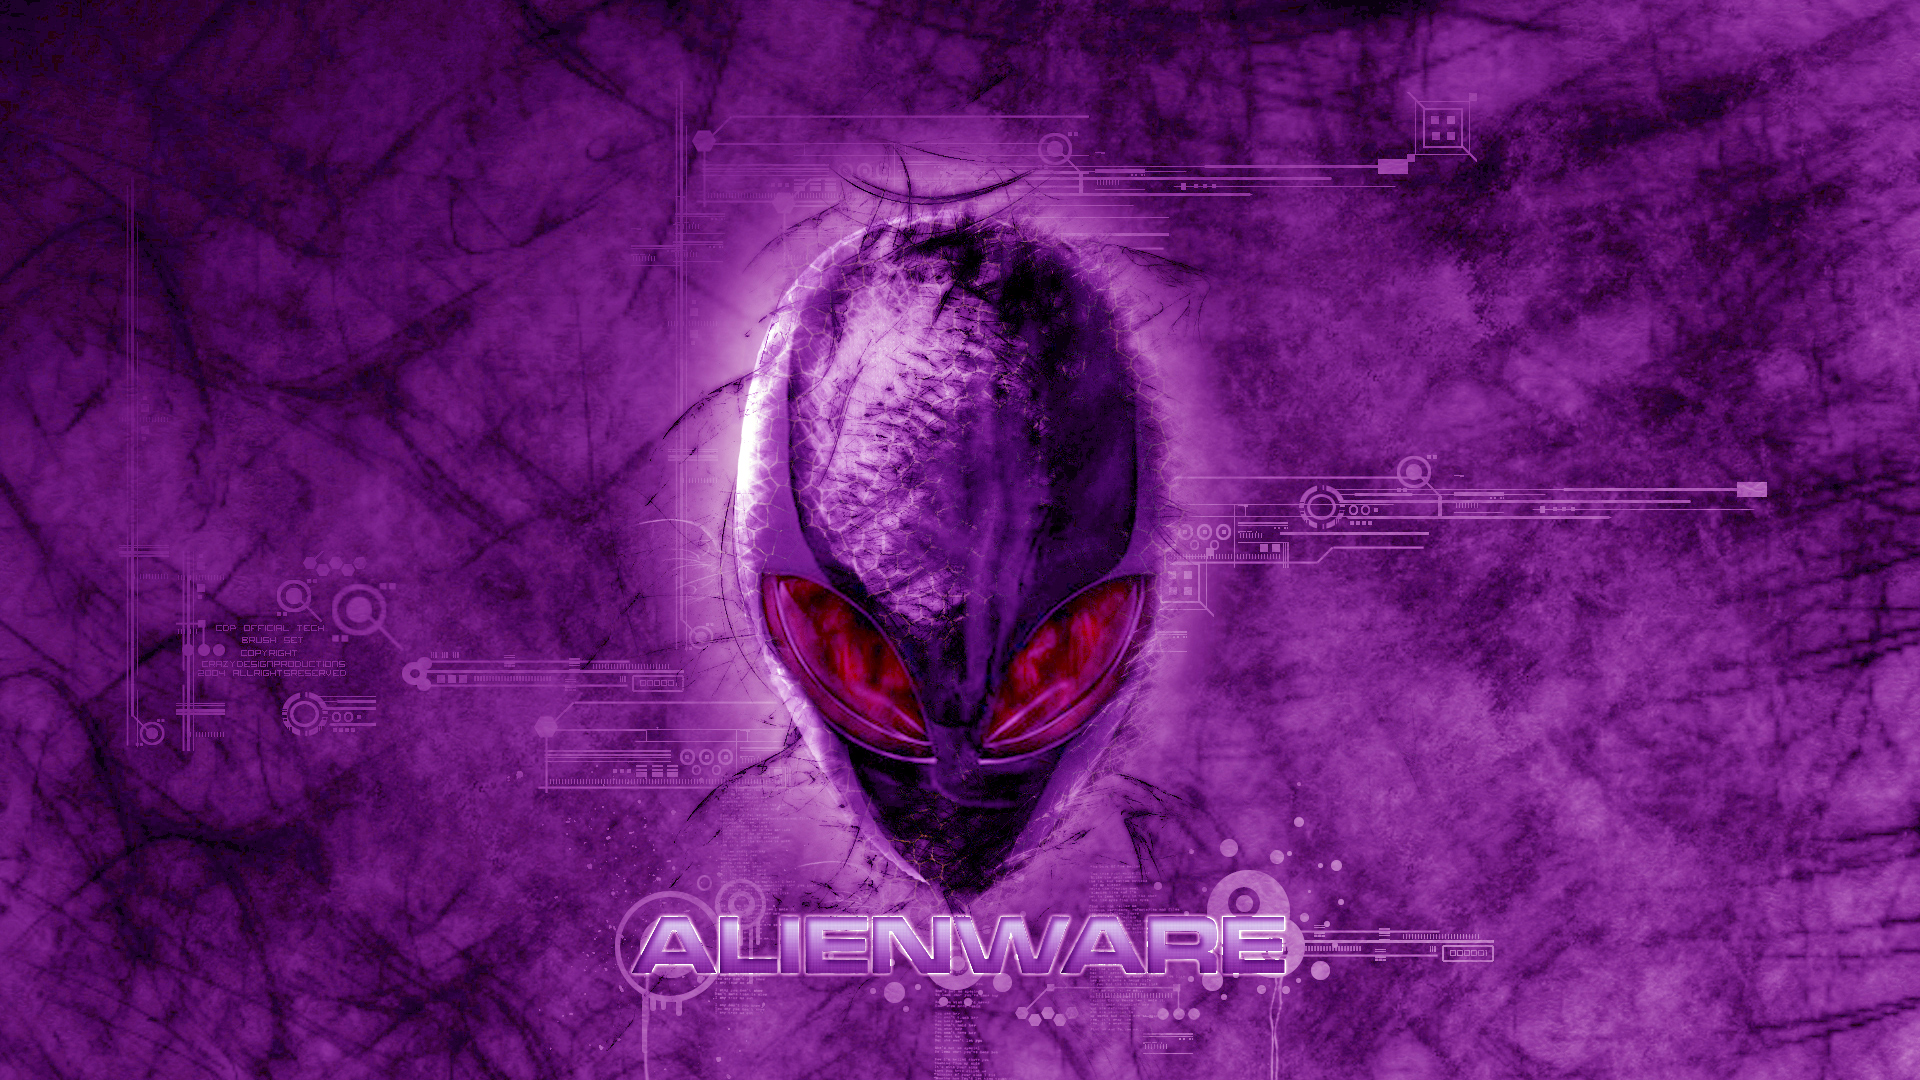 Alienware Logo 1920x1080 32 Wallpaper HD 1920x1080